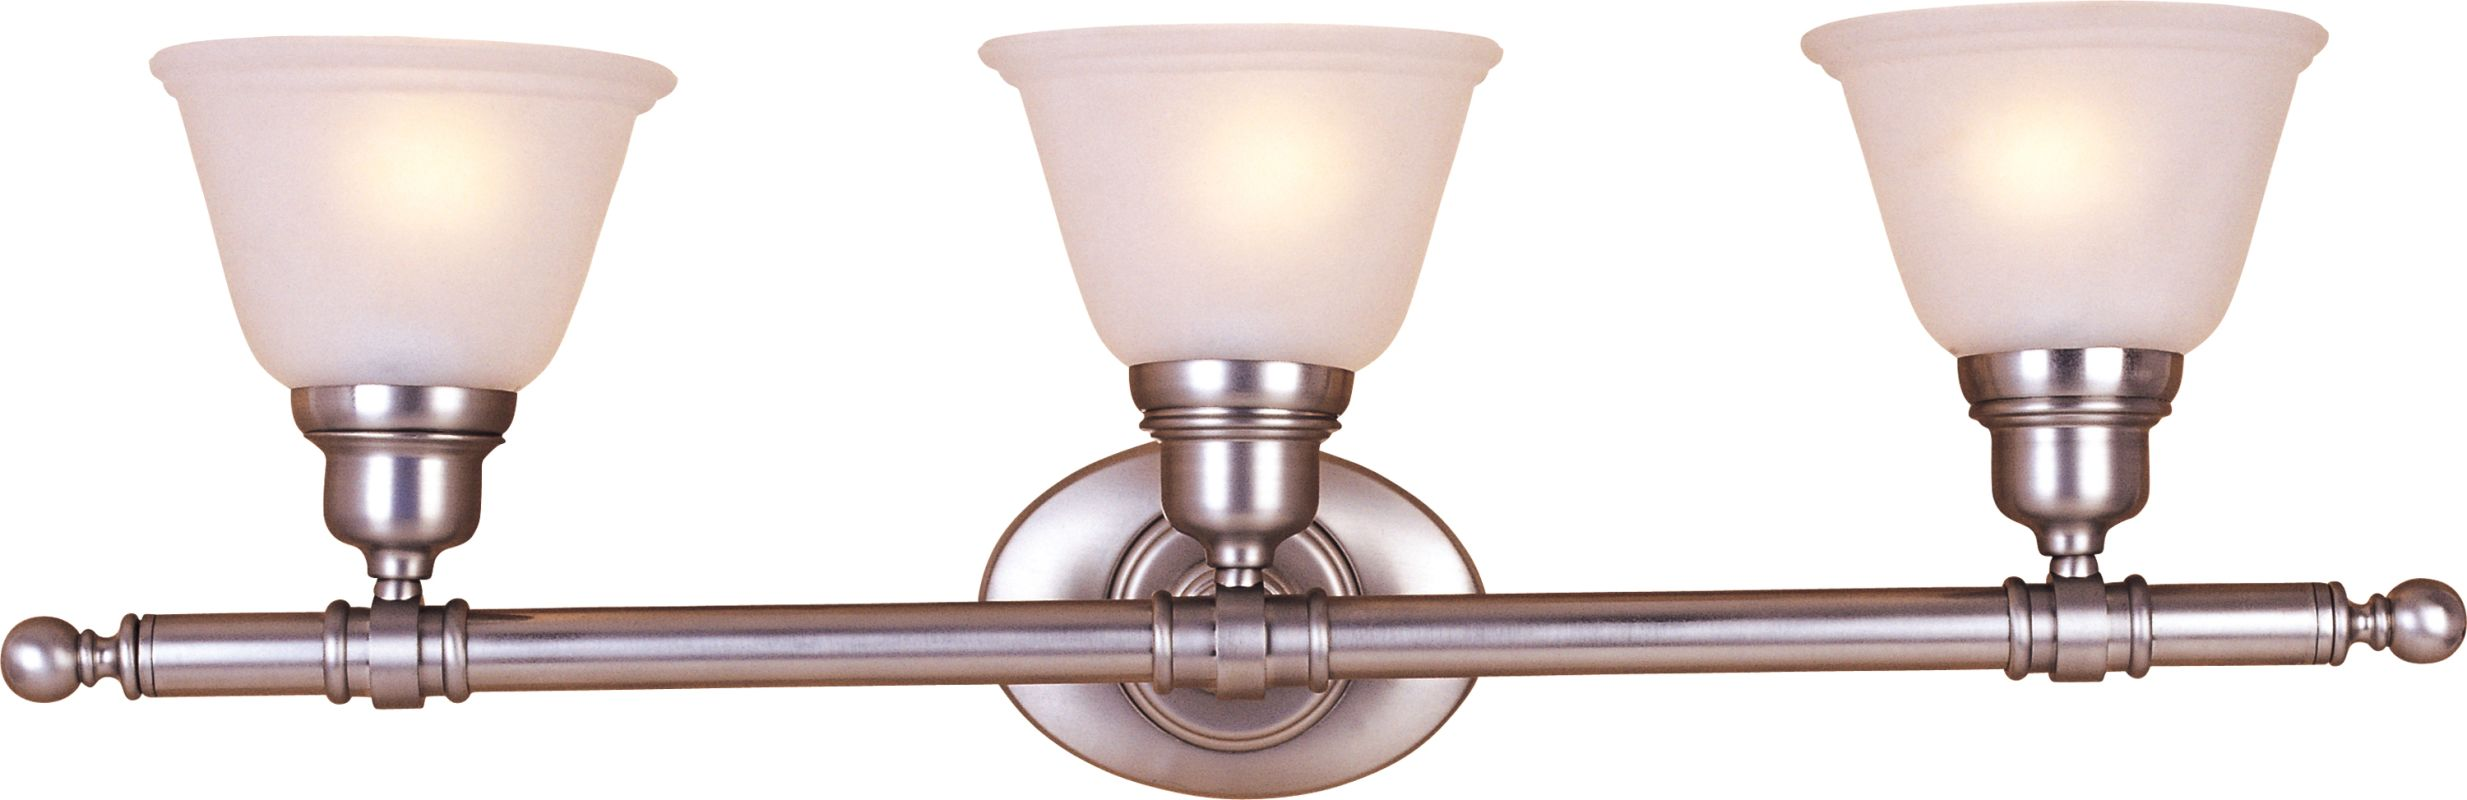 "Maxim 7143 3 Light 29.5"" Wide Bathroom Fixture from the Essentials -"